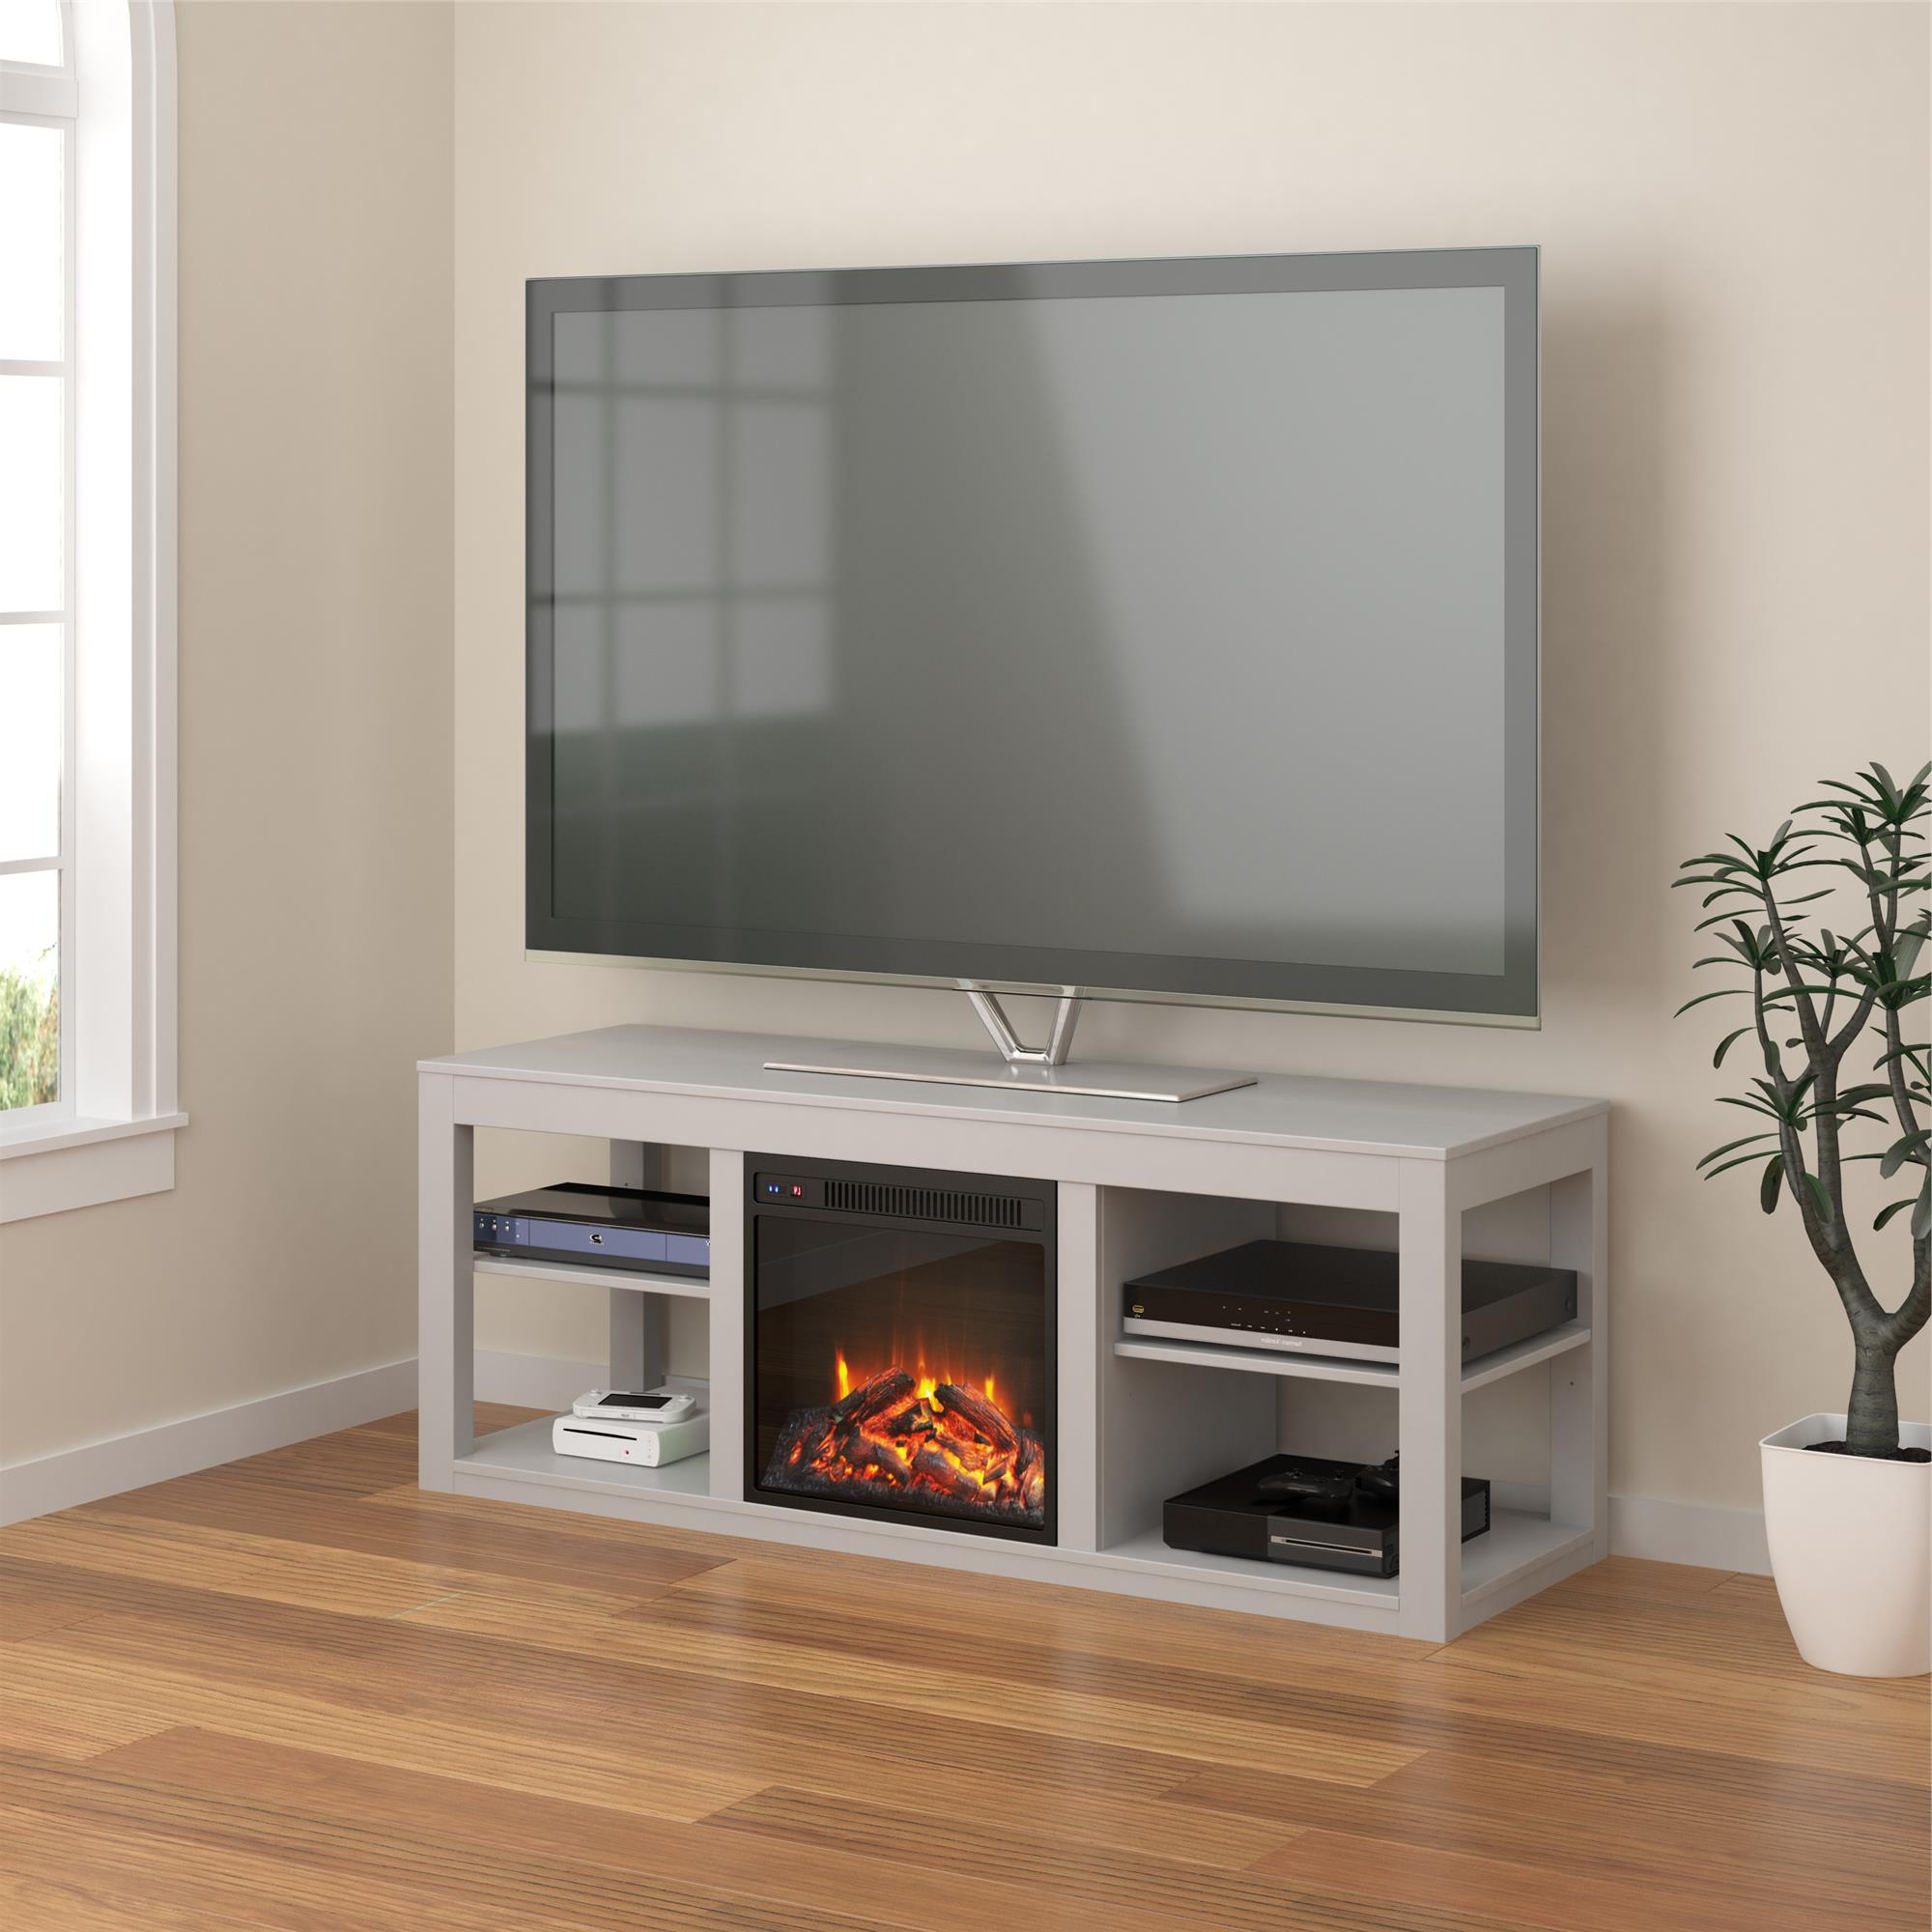 Ameriwood Home Parsons Electric Fireplace Tv Stand For Tvs With Penelope Dove Grey Tv Stands (View 5 of 20)